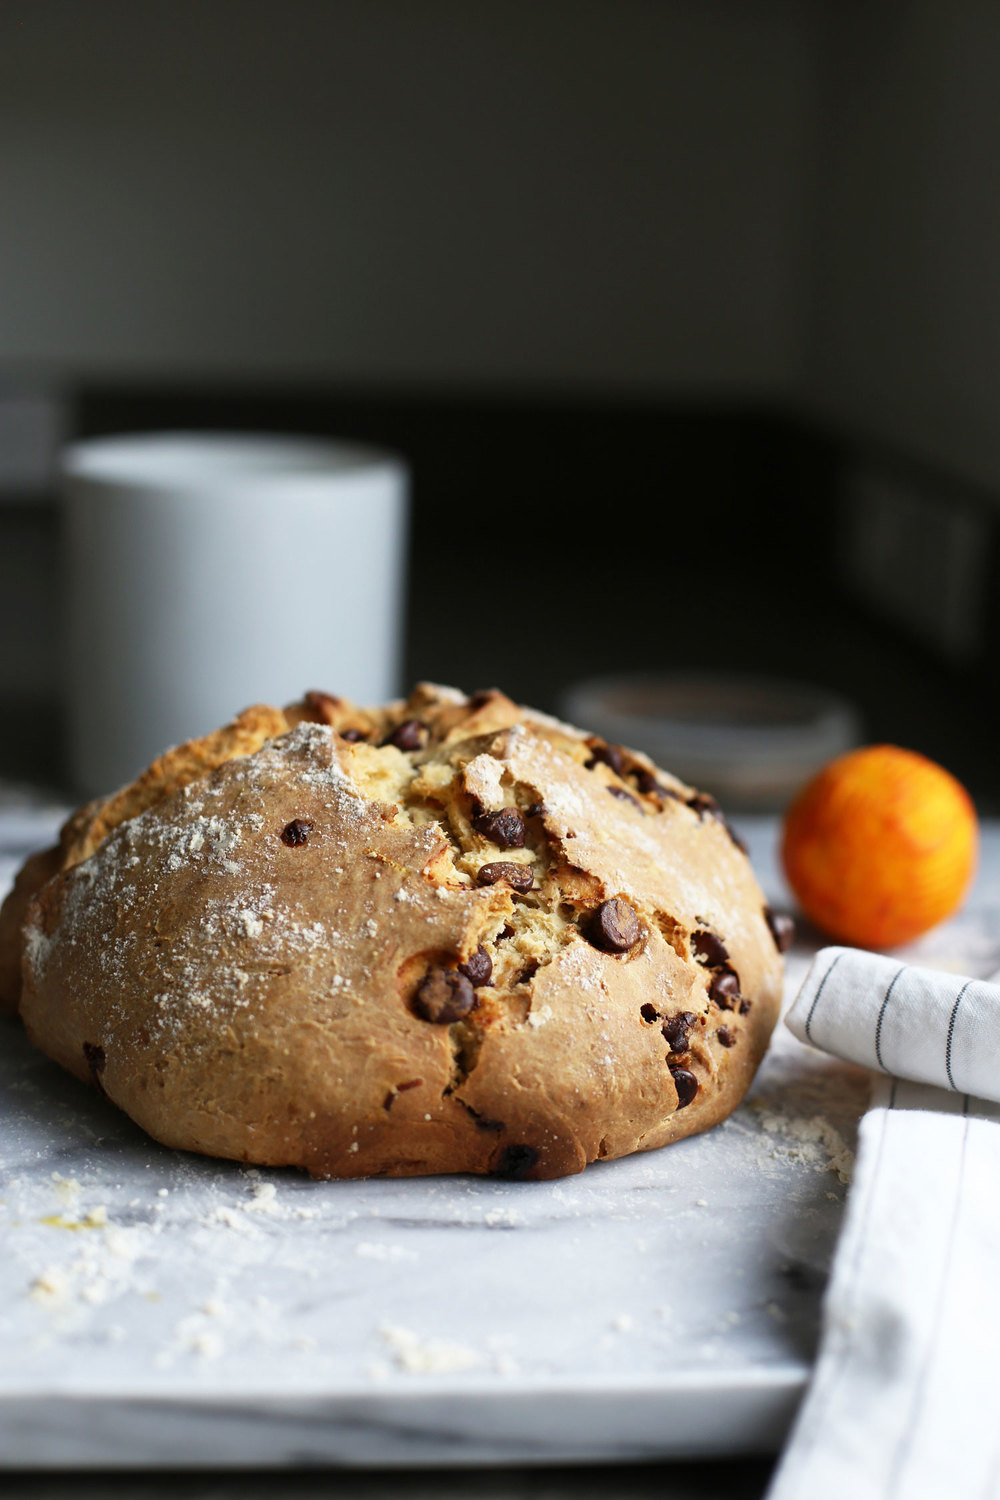 Irish Soda Bread with Orange Zest and Chocolate Chips